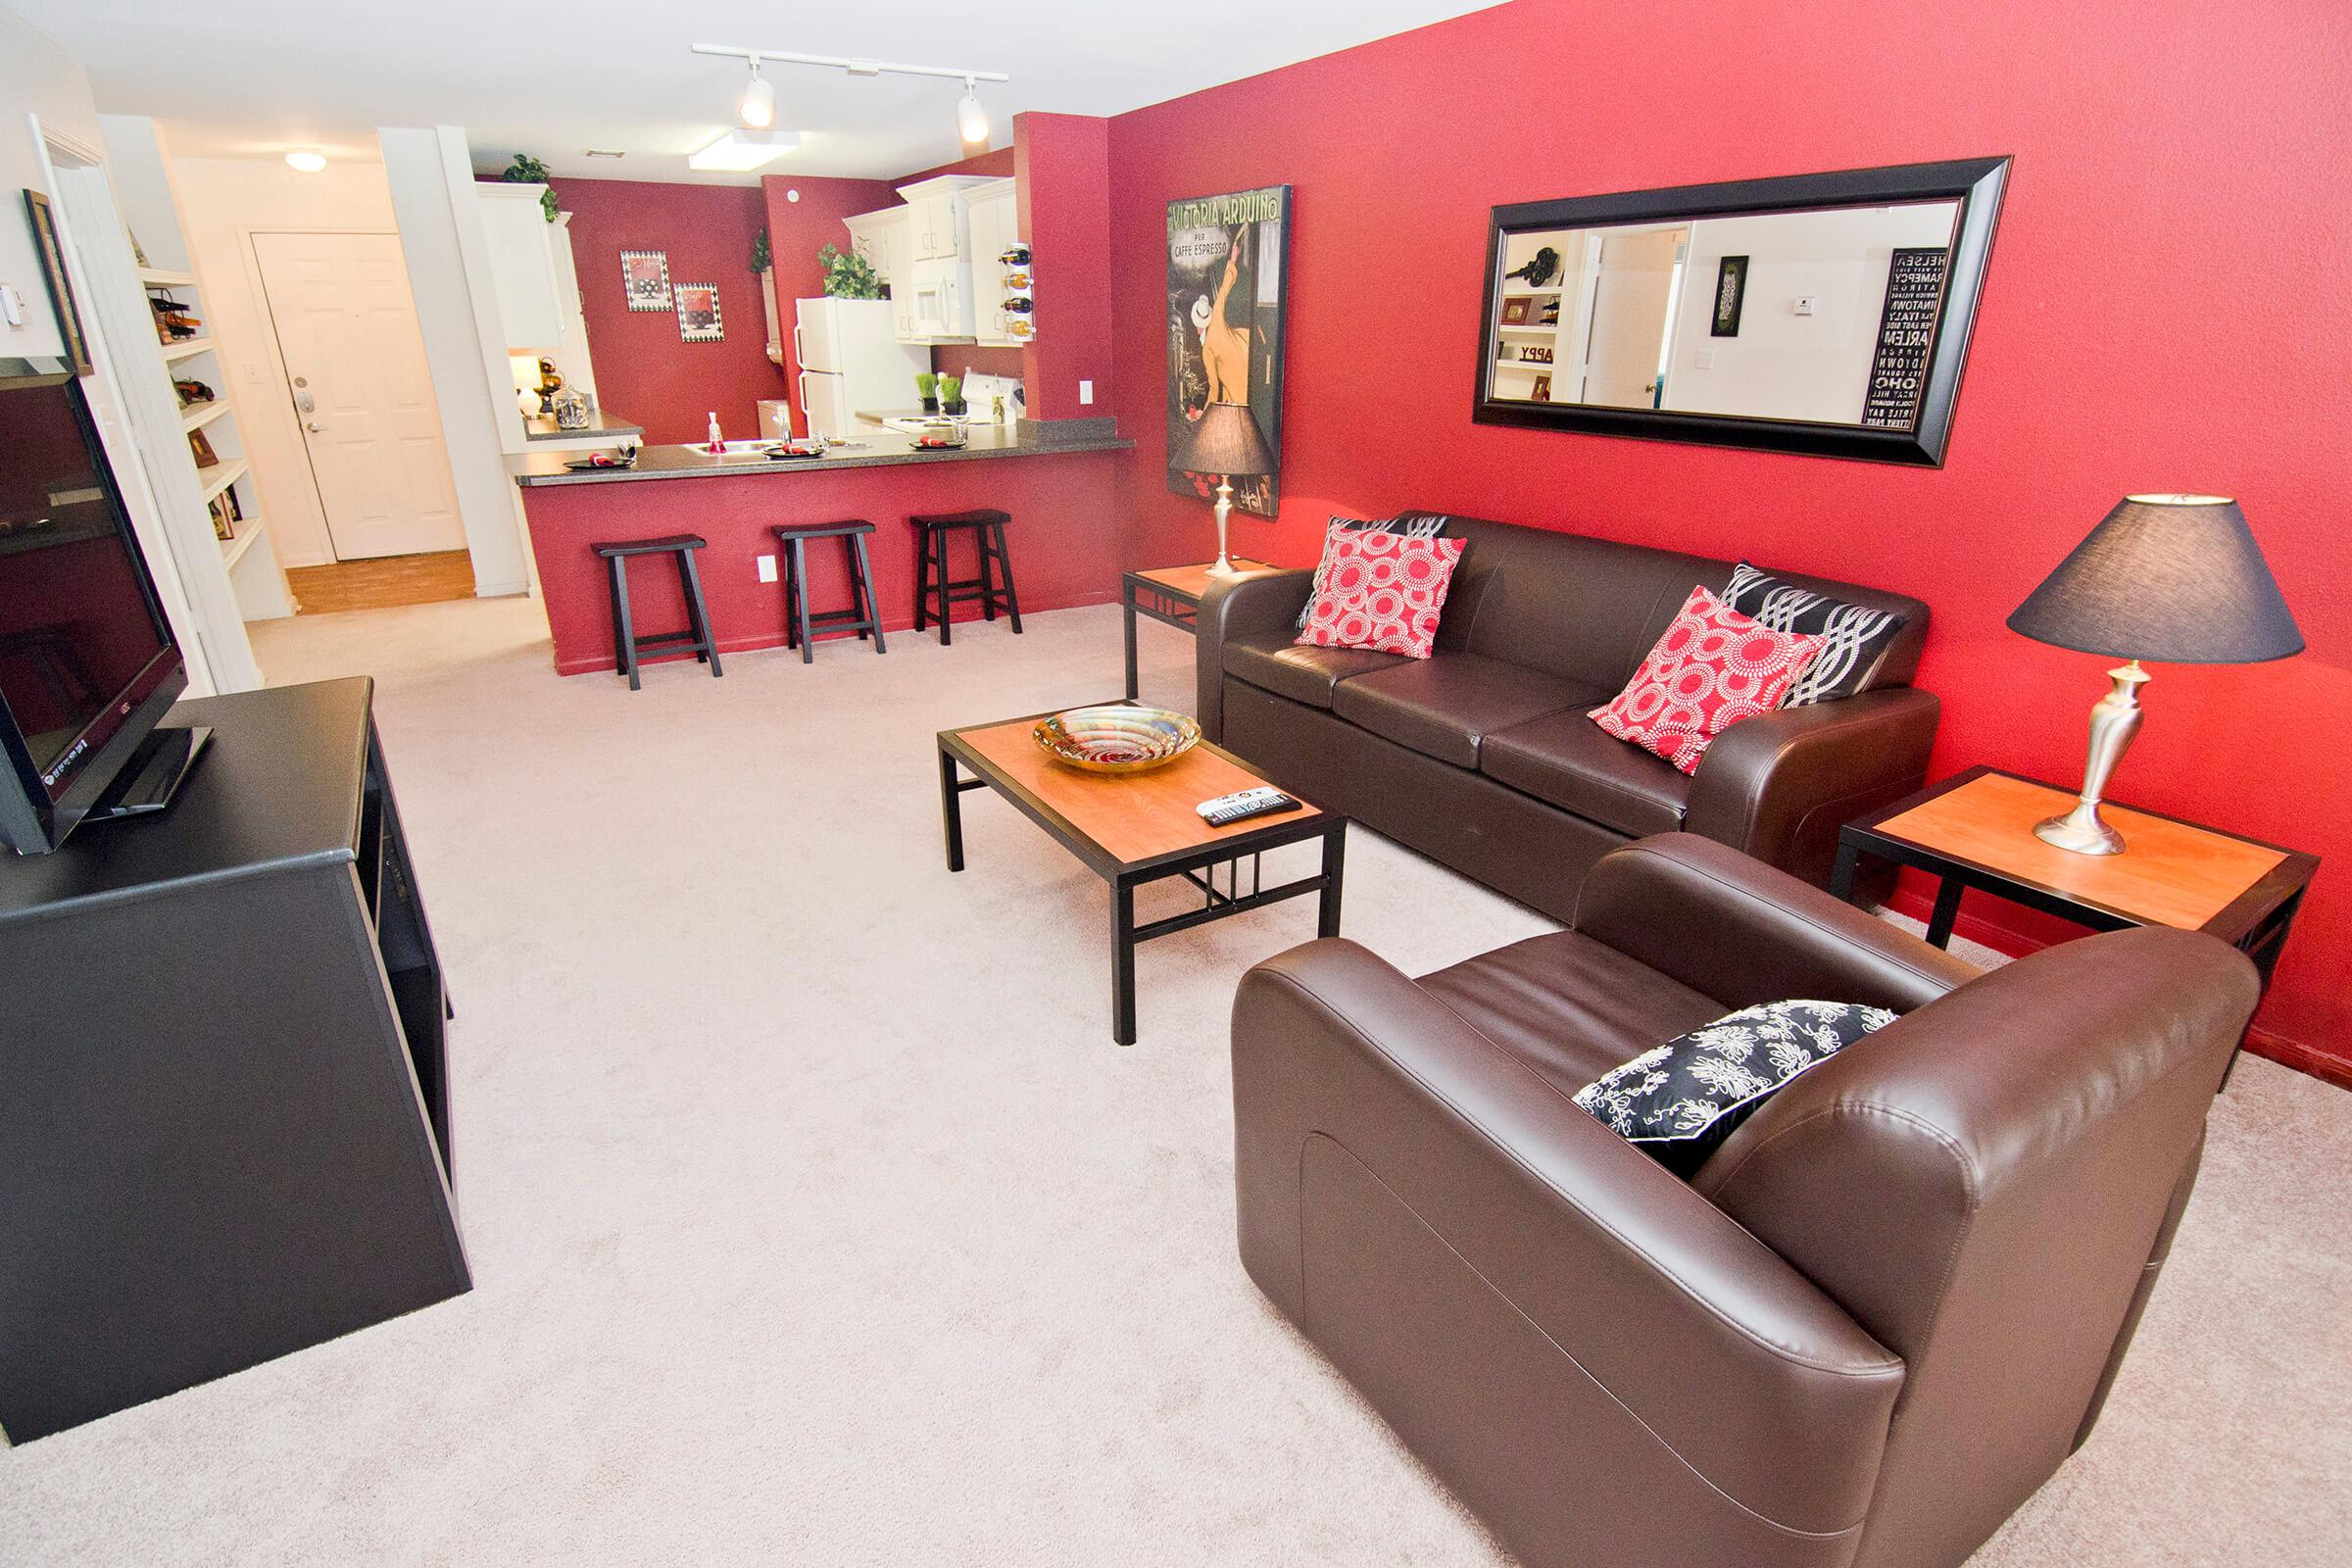 a living room filled with furniture and a red leather chair